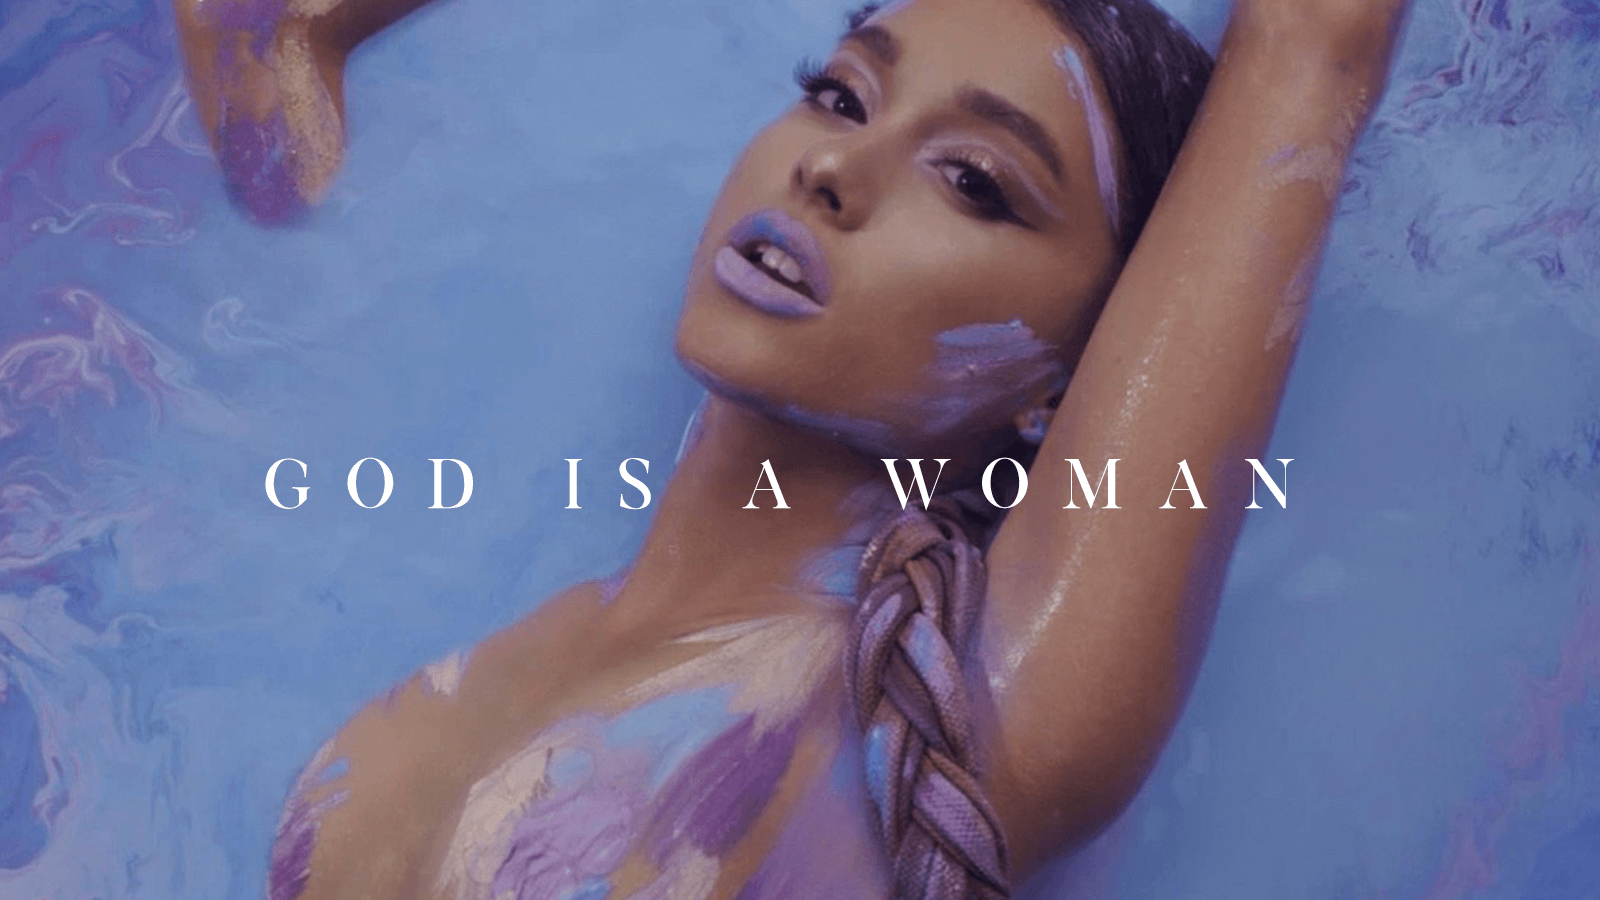 Ariana Grande - god is a women